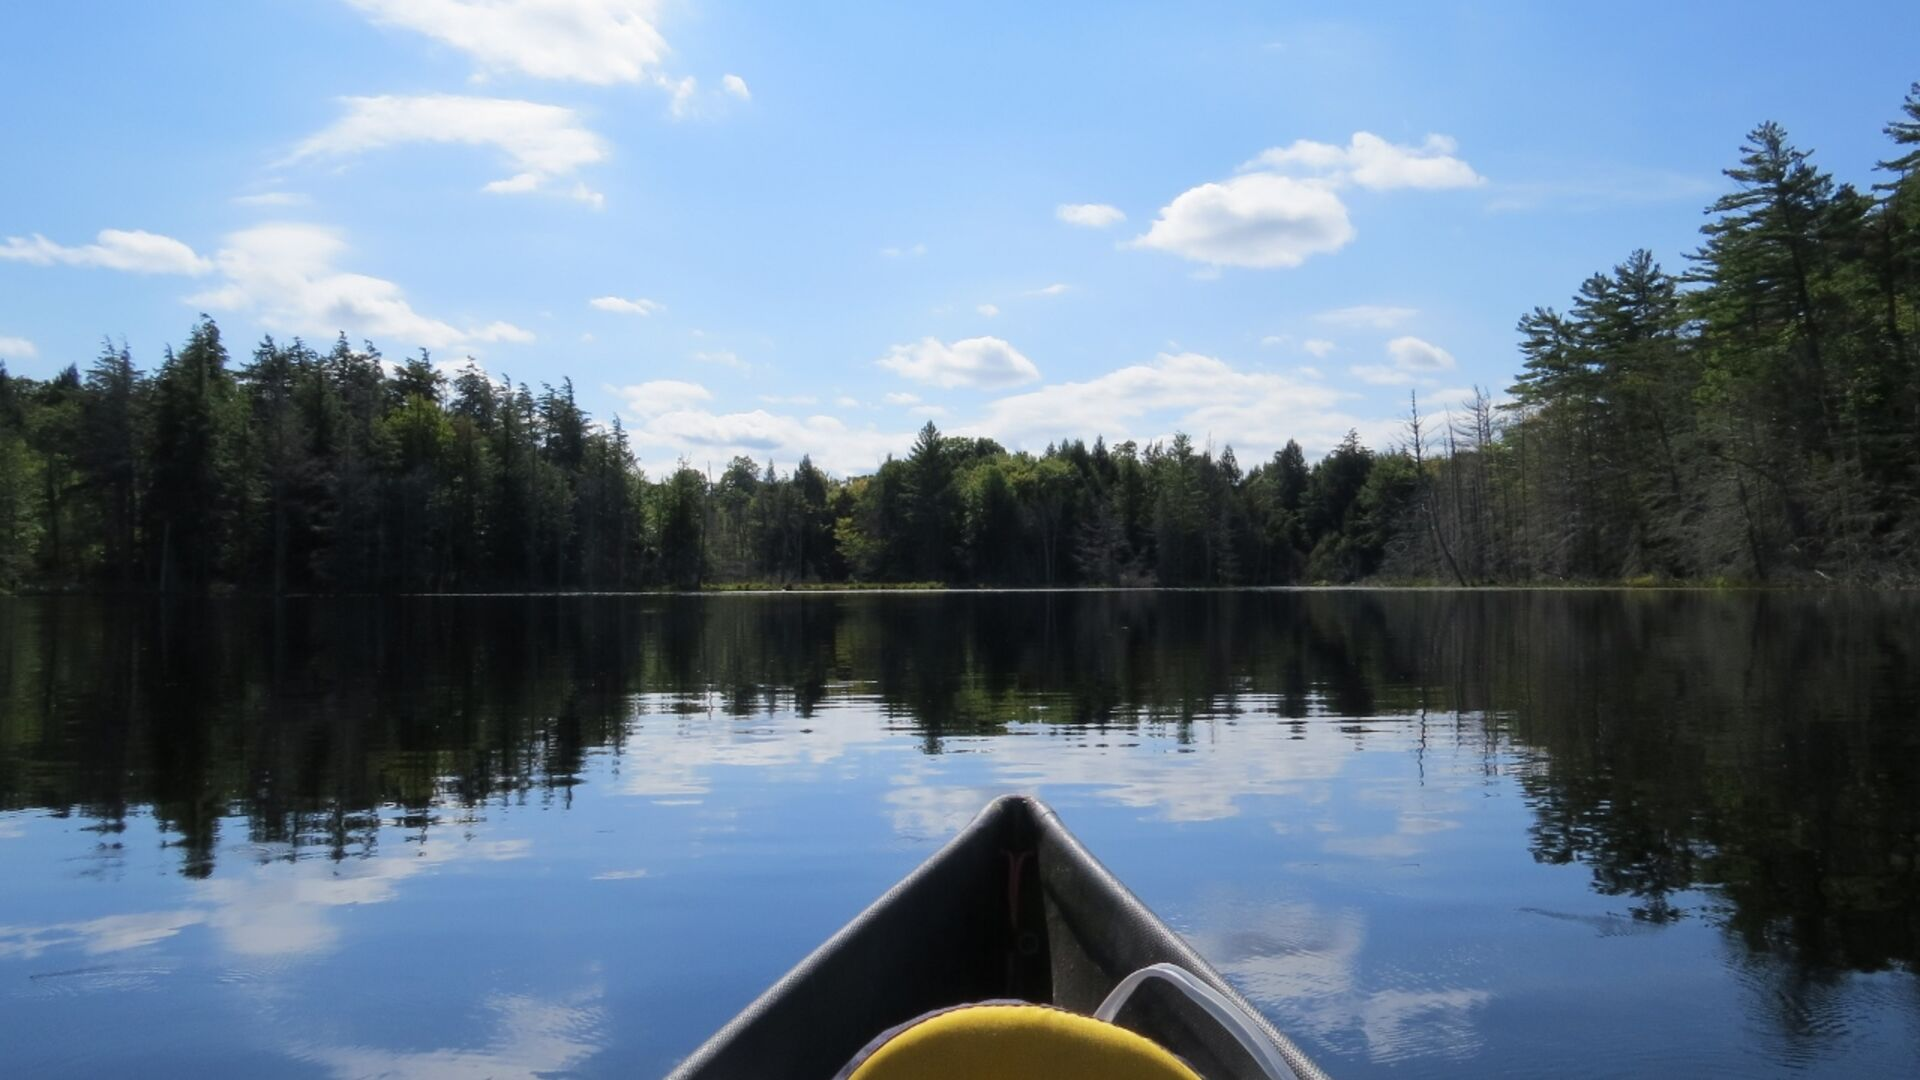 The lakes are made for paddling.